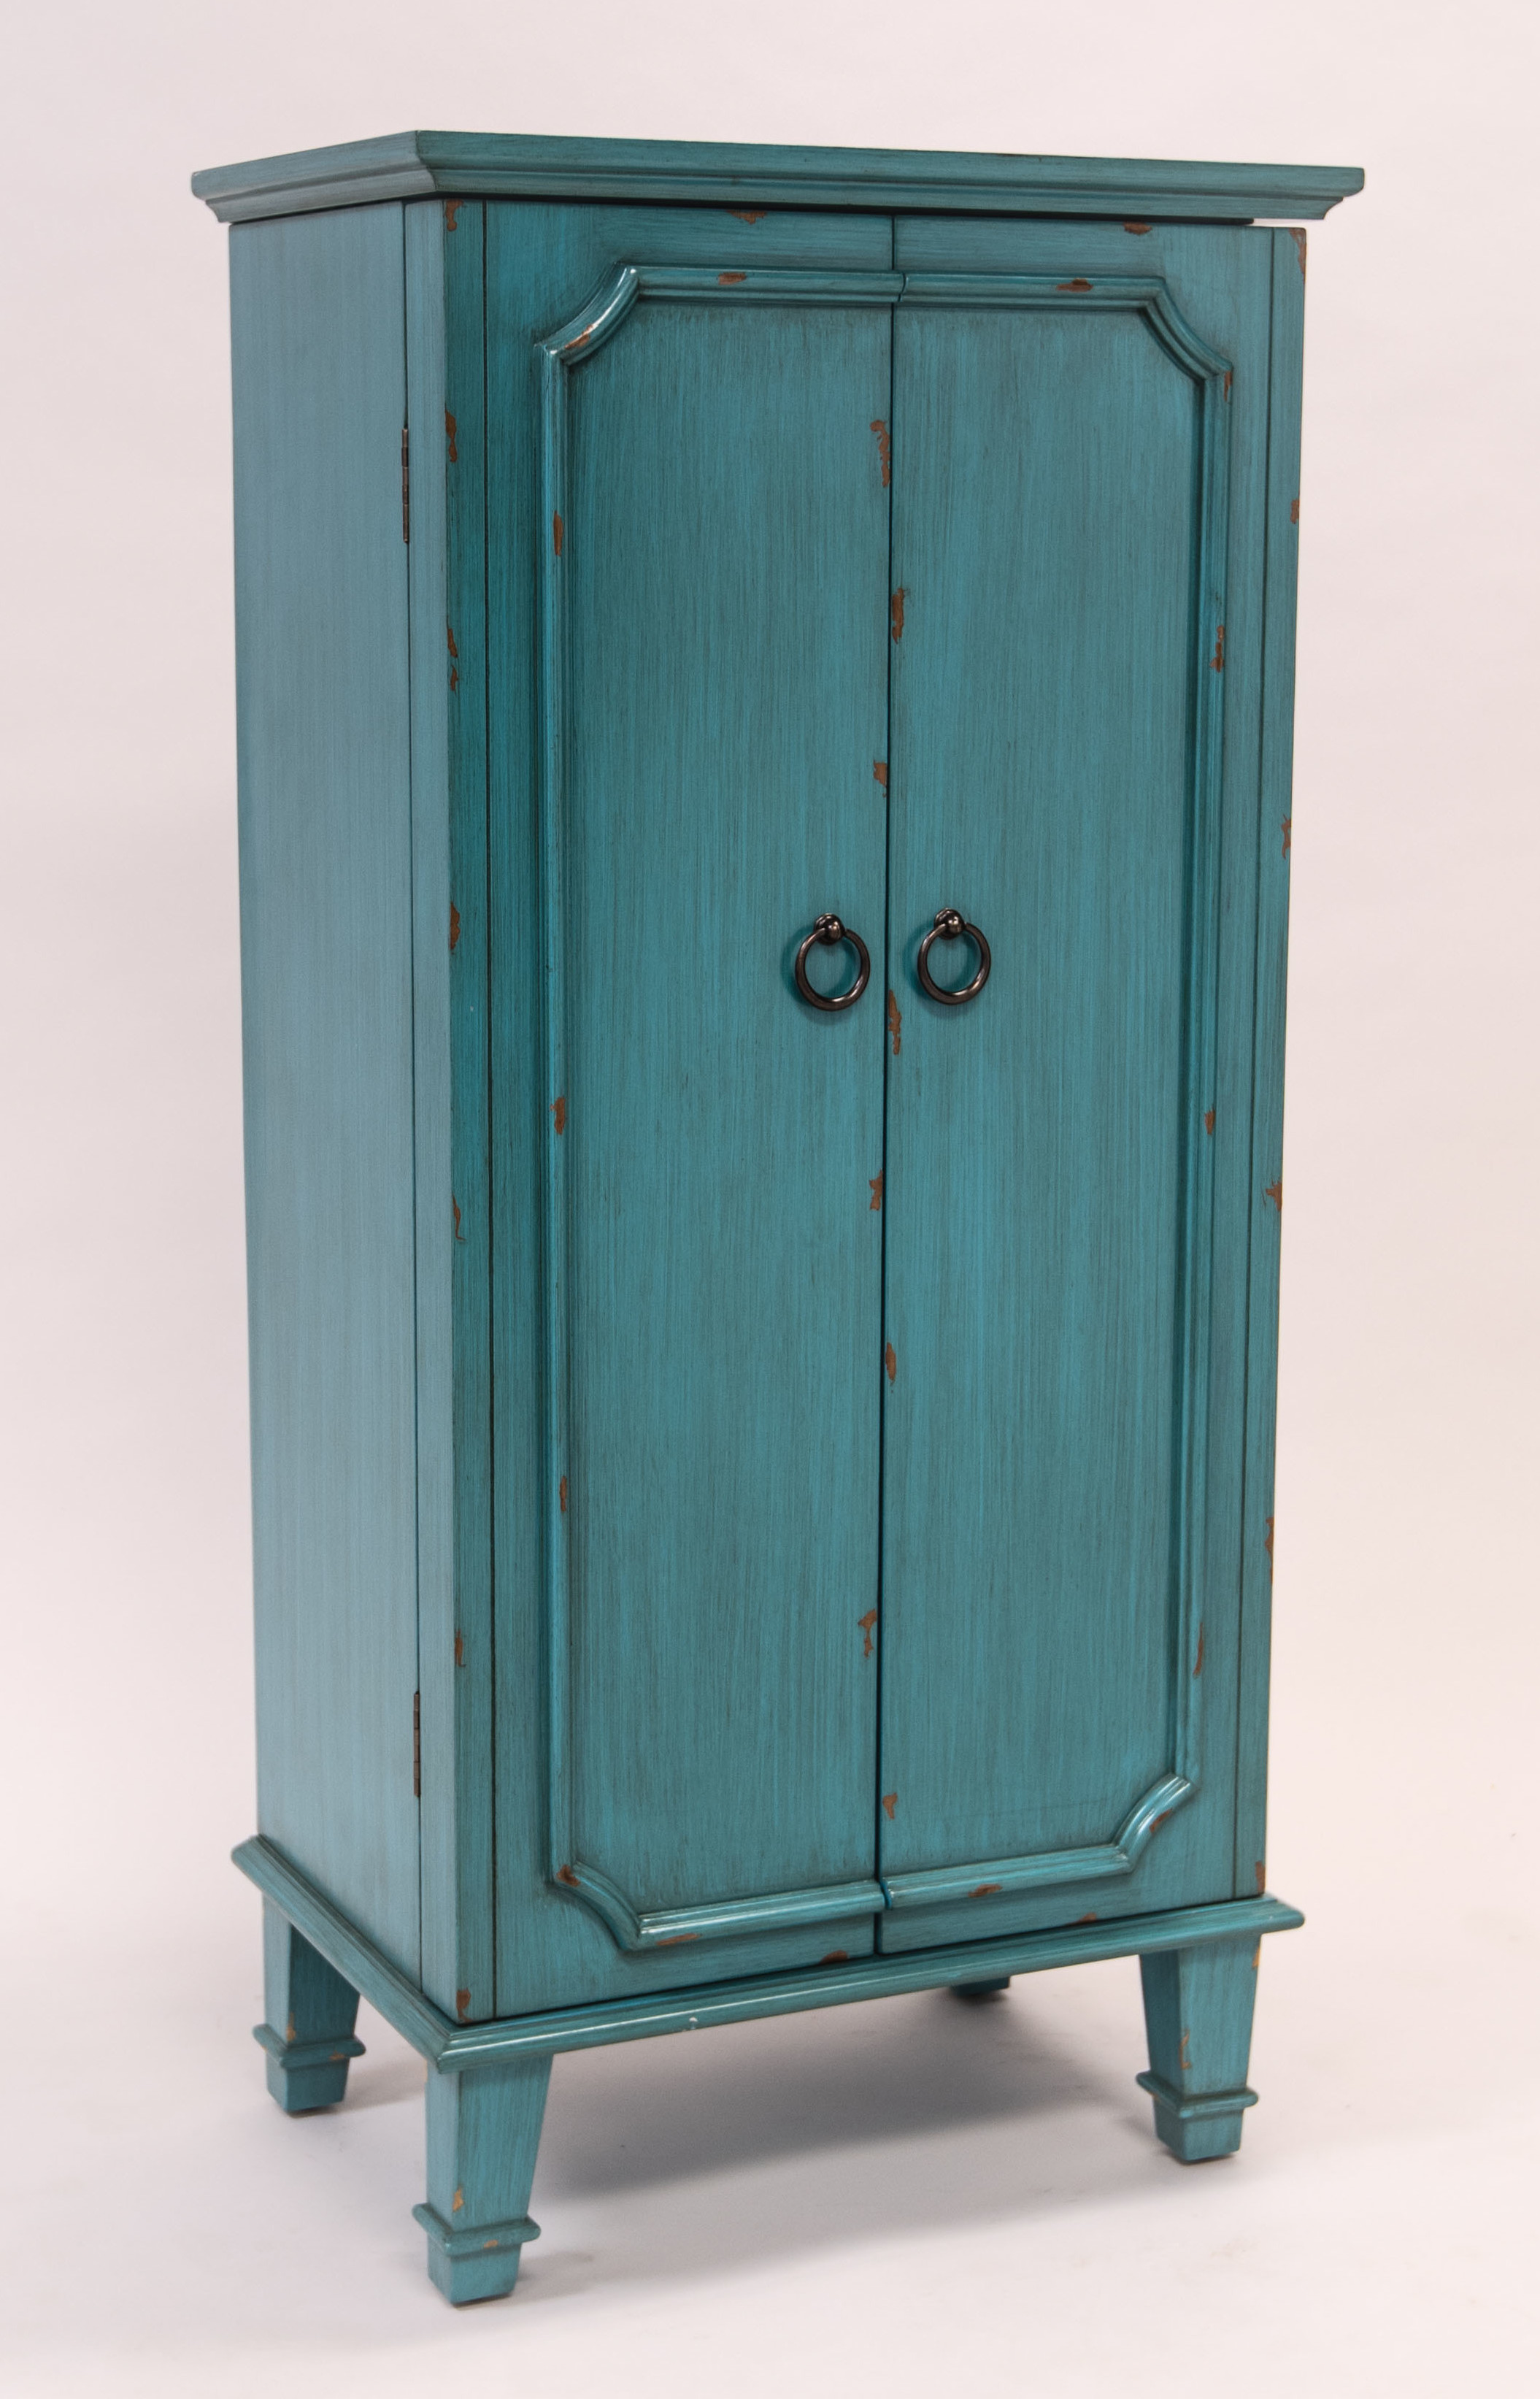 Cabby Rustic Turquoise Jewelry armoire Hives and Honey